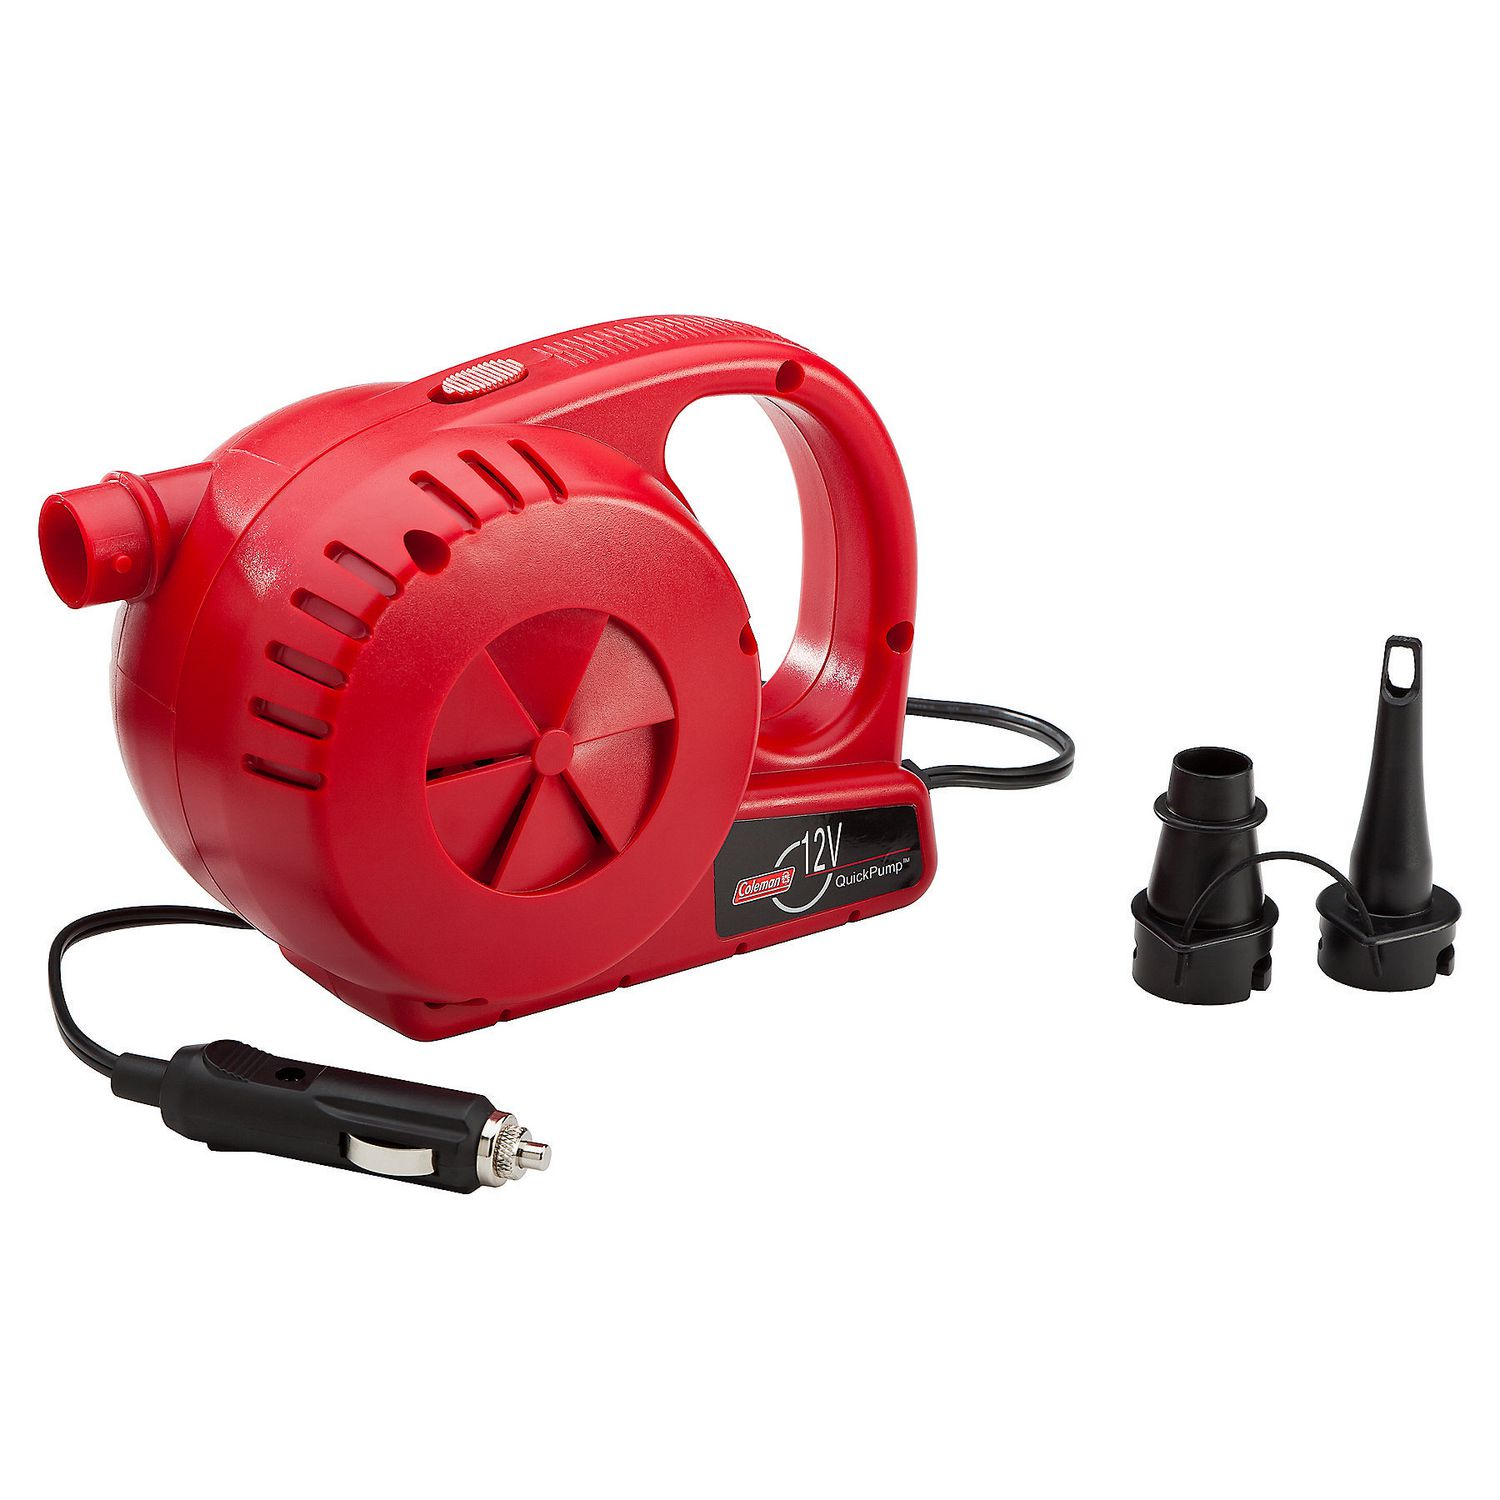 Coleman 12V Electric Pump Inflate Deflate Air Bed Inflatable Camping Car Beach